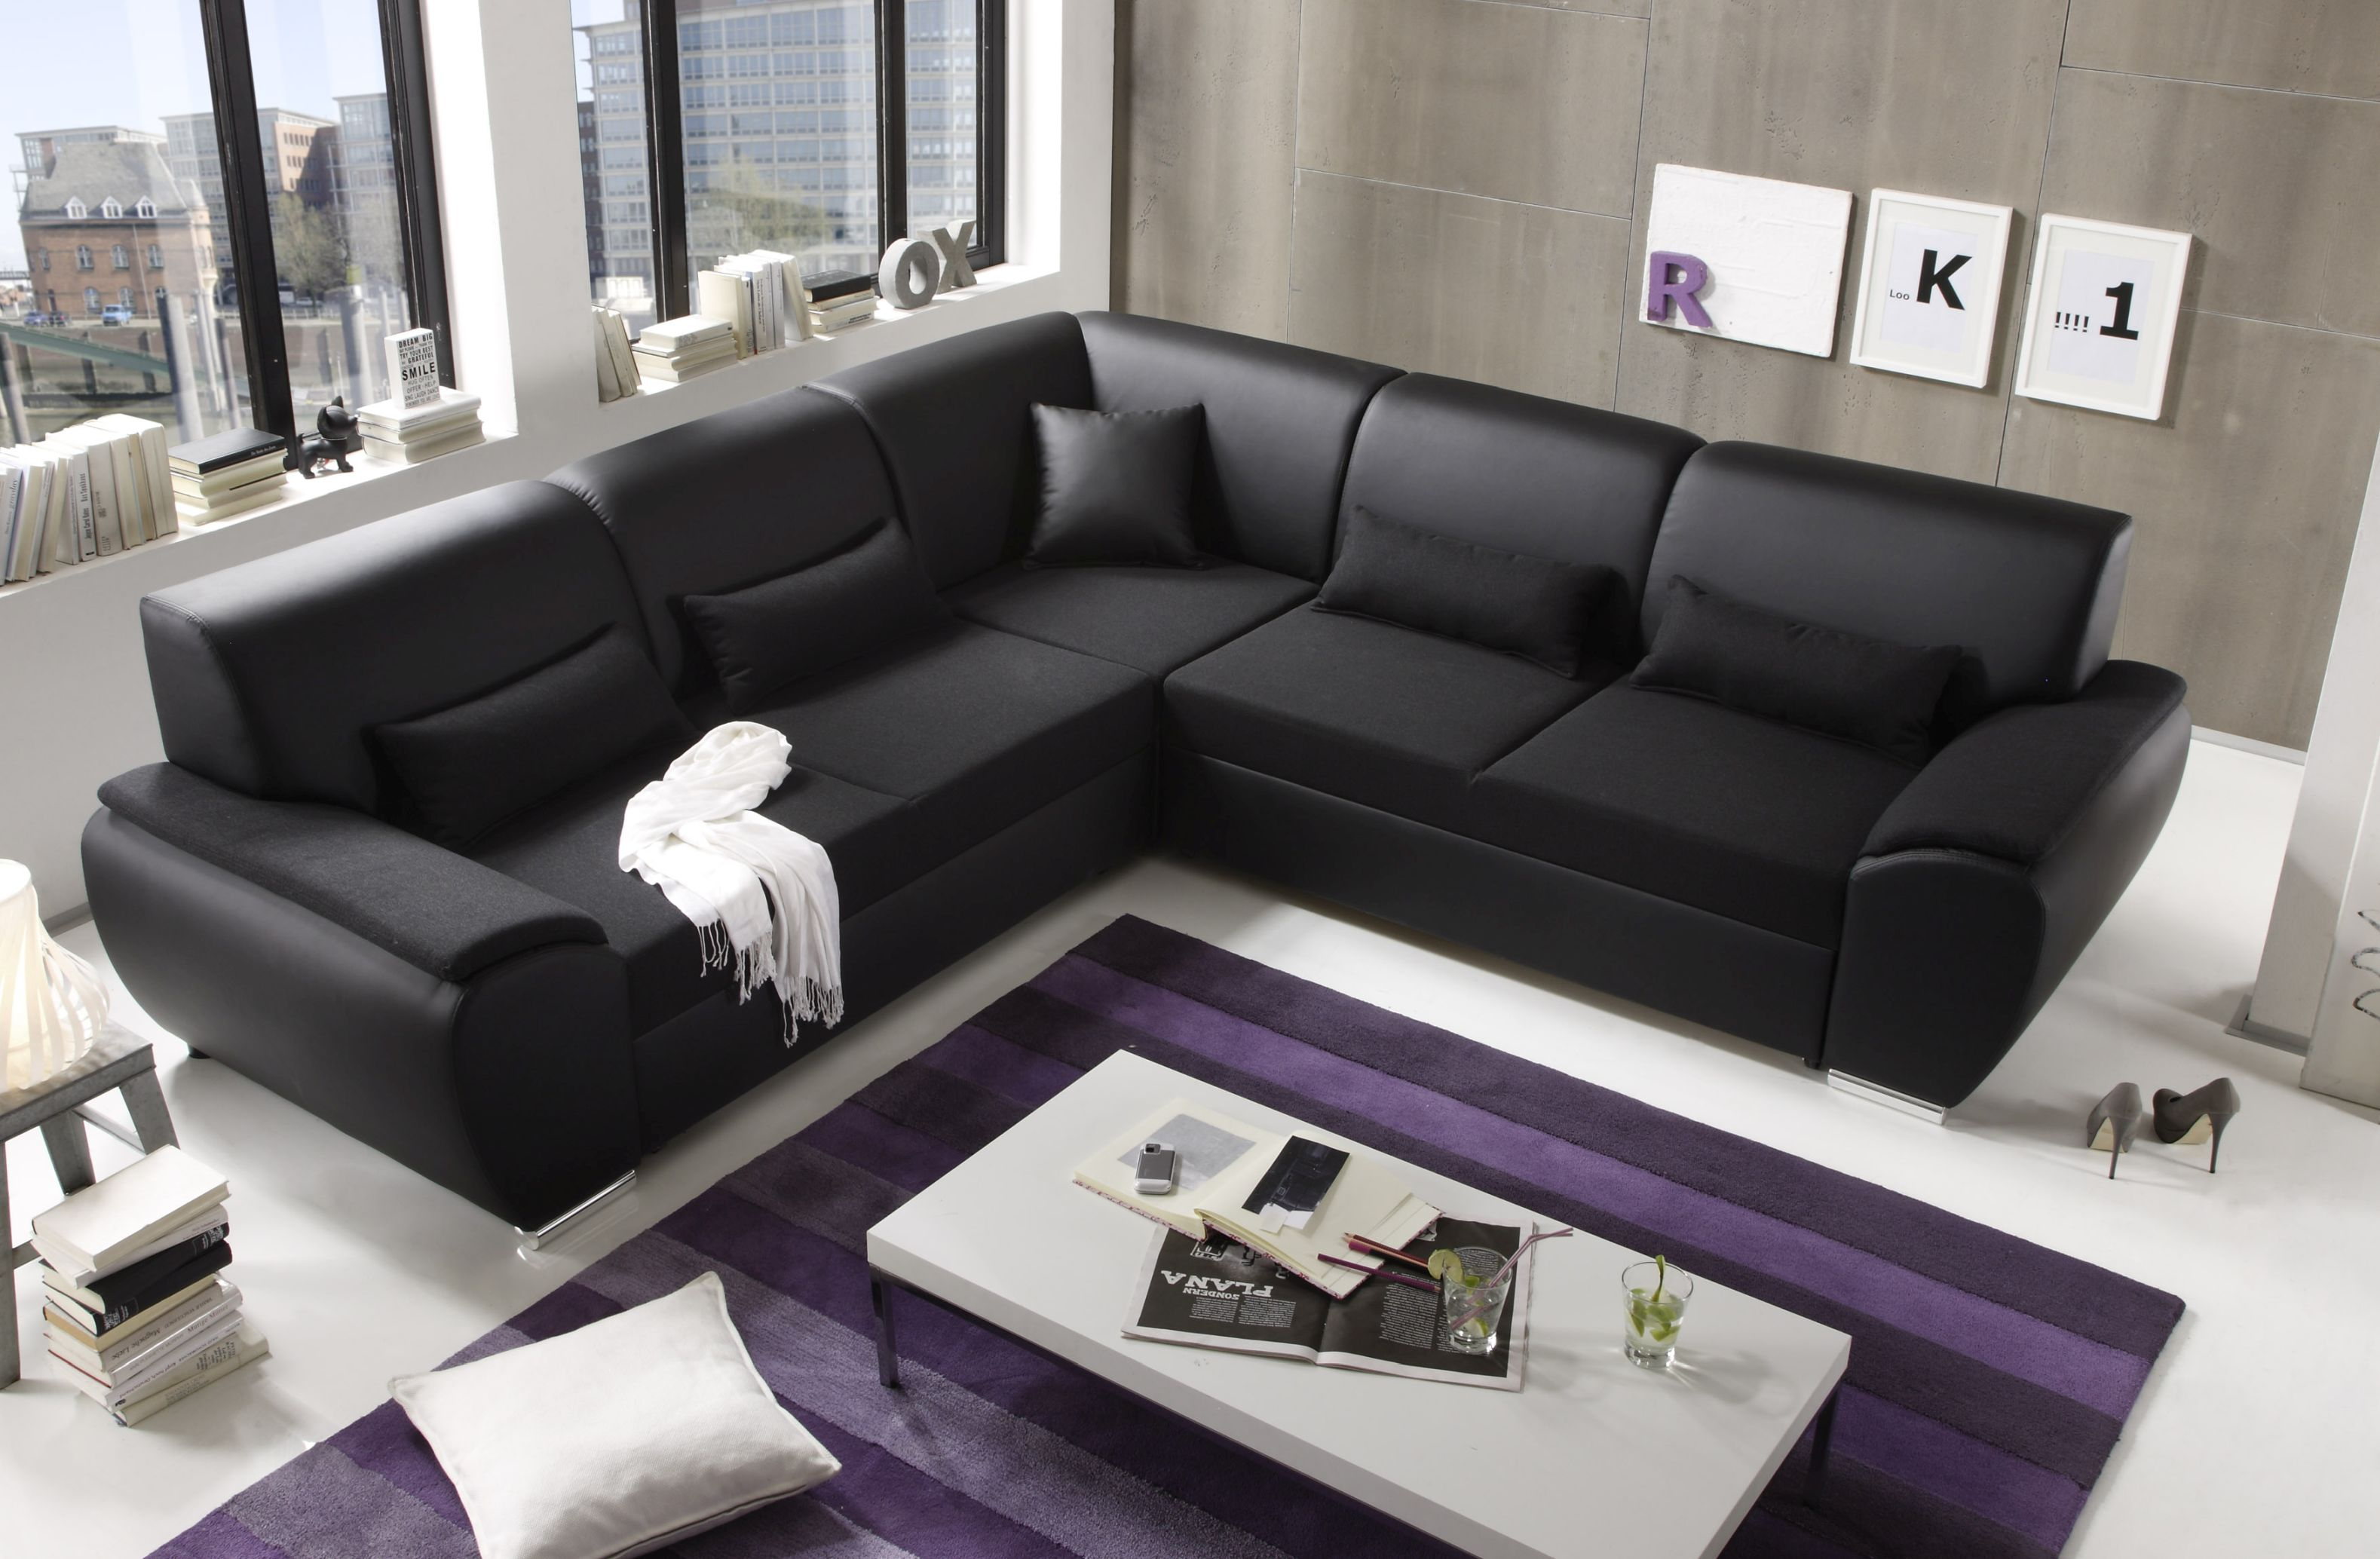 ecksofa kombiecke couch schlafcouch funktionssofa ausziehbar schwarz 272 cm 4250826308163 ebay. Black Bedroom Furniture Sets. Home Design Ideas